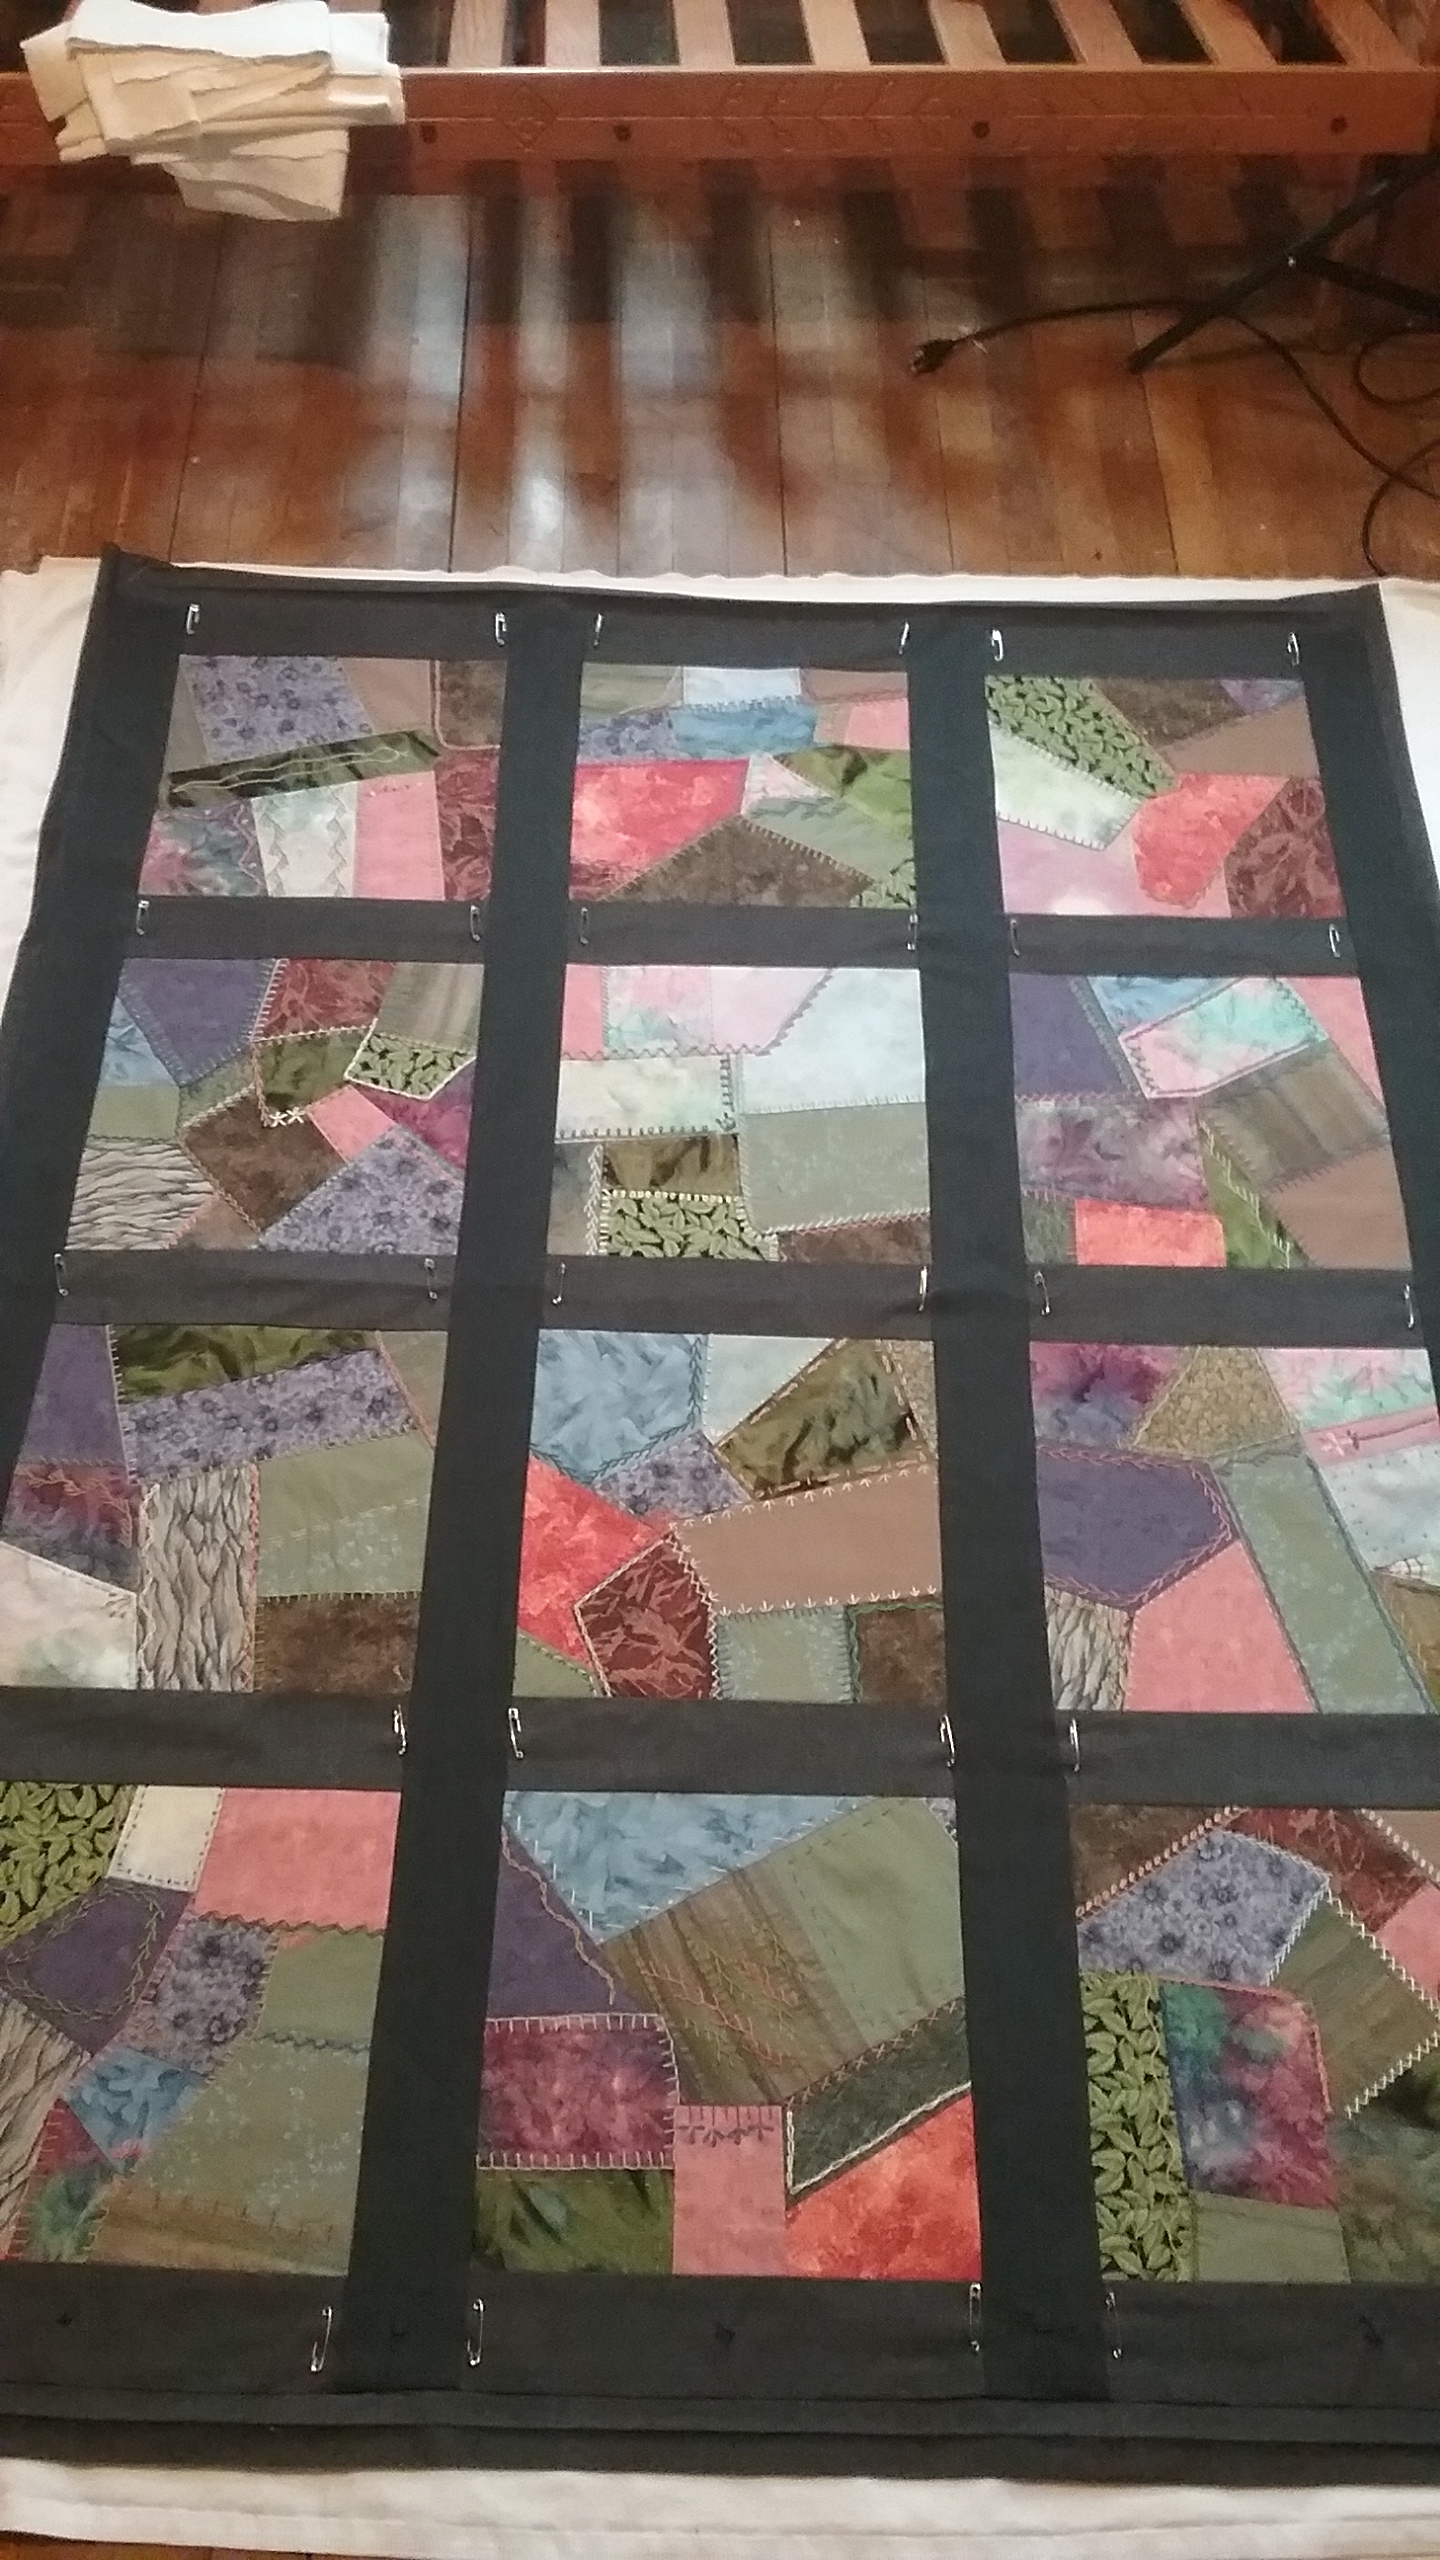 Three layers of crazy quilt pinned, ready for tying, by Mary Warner, April 2, 2017.